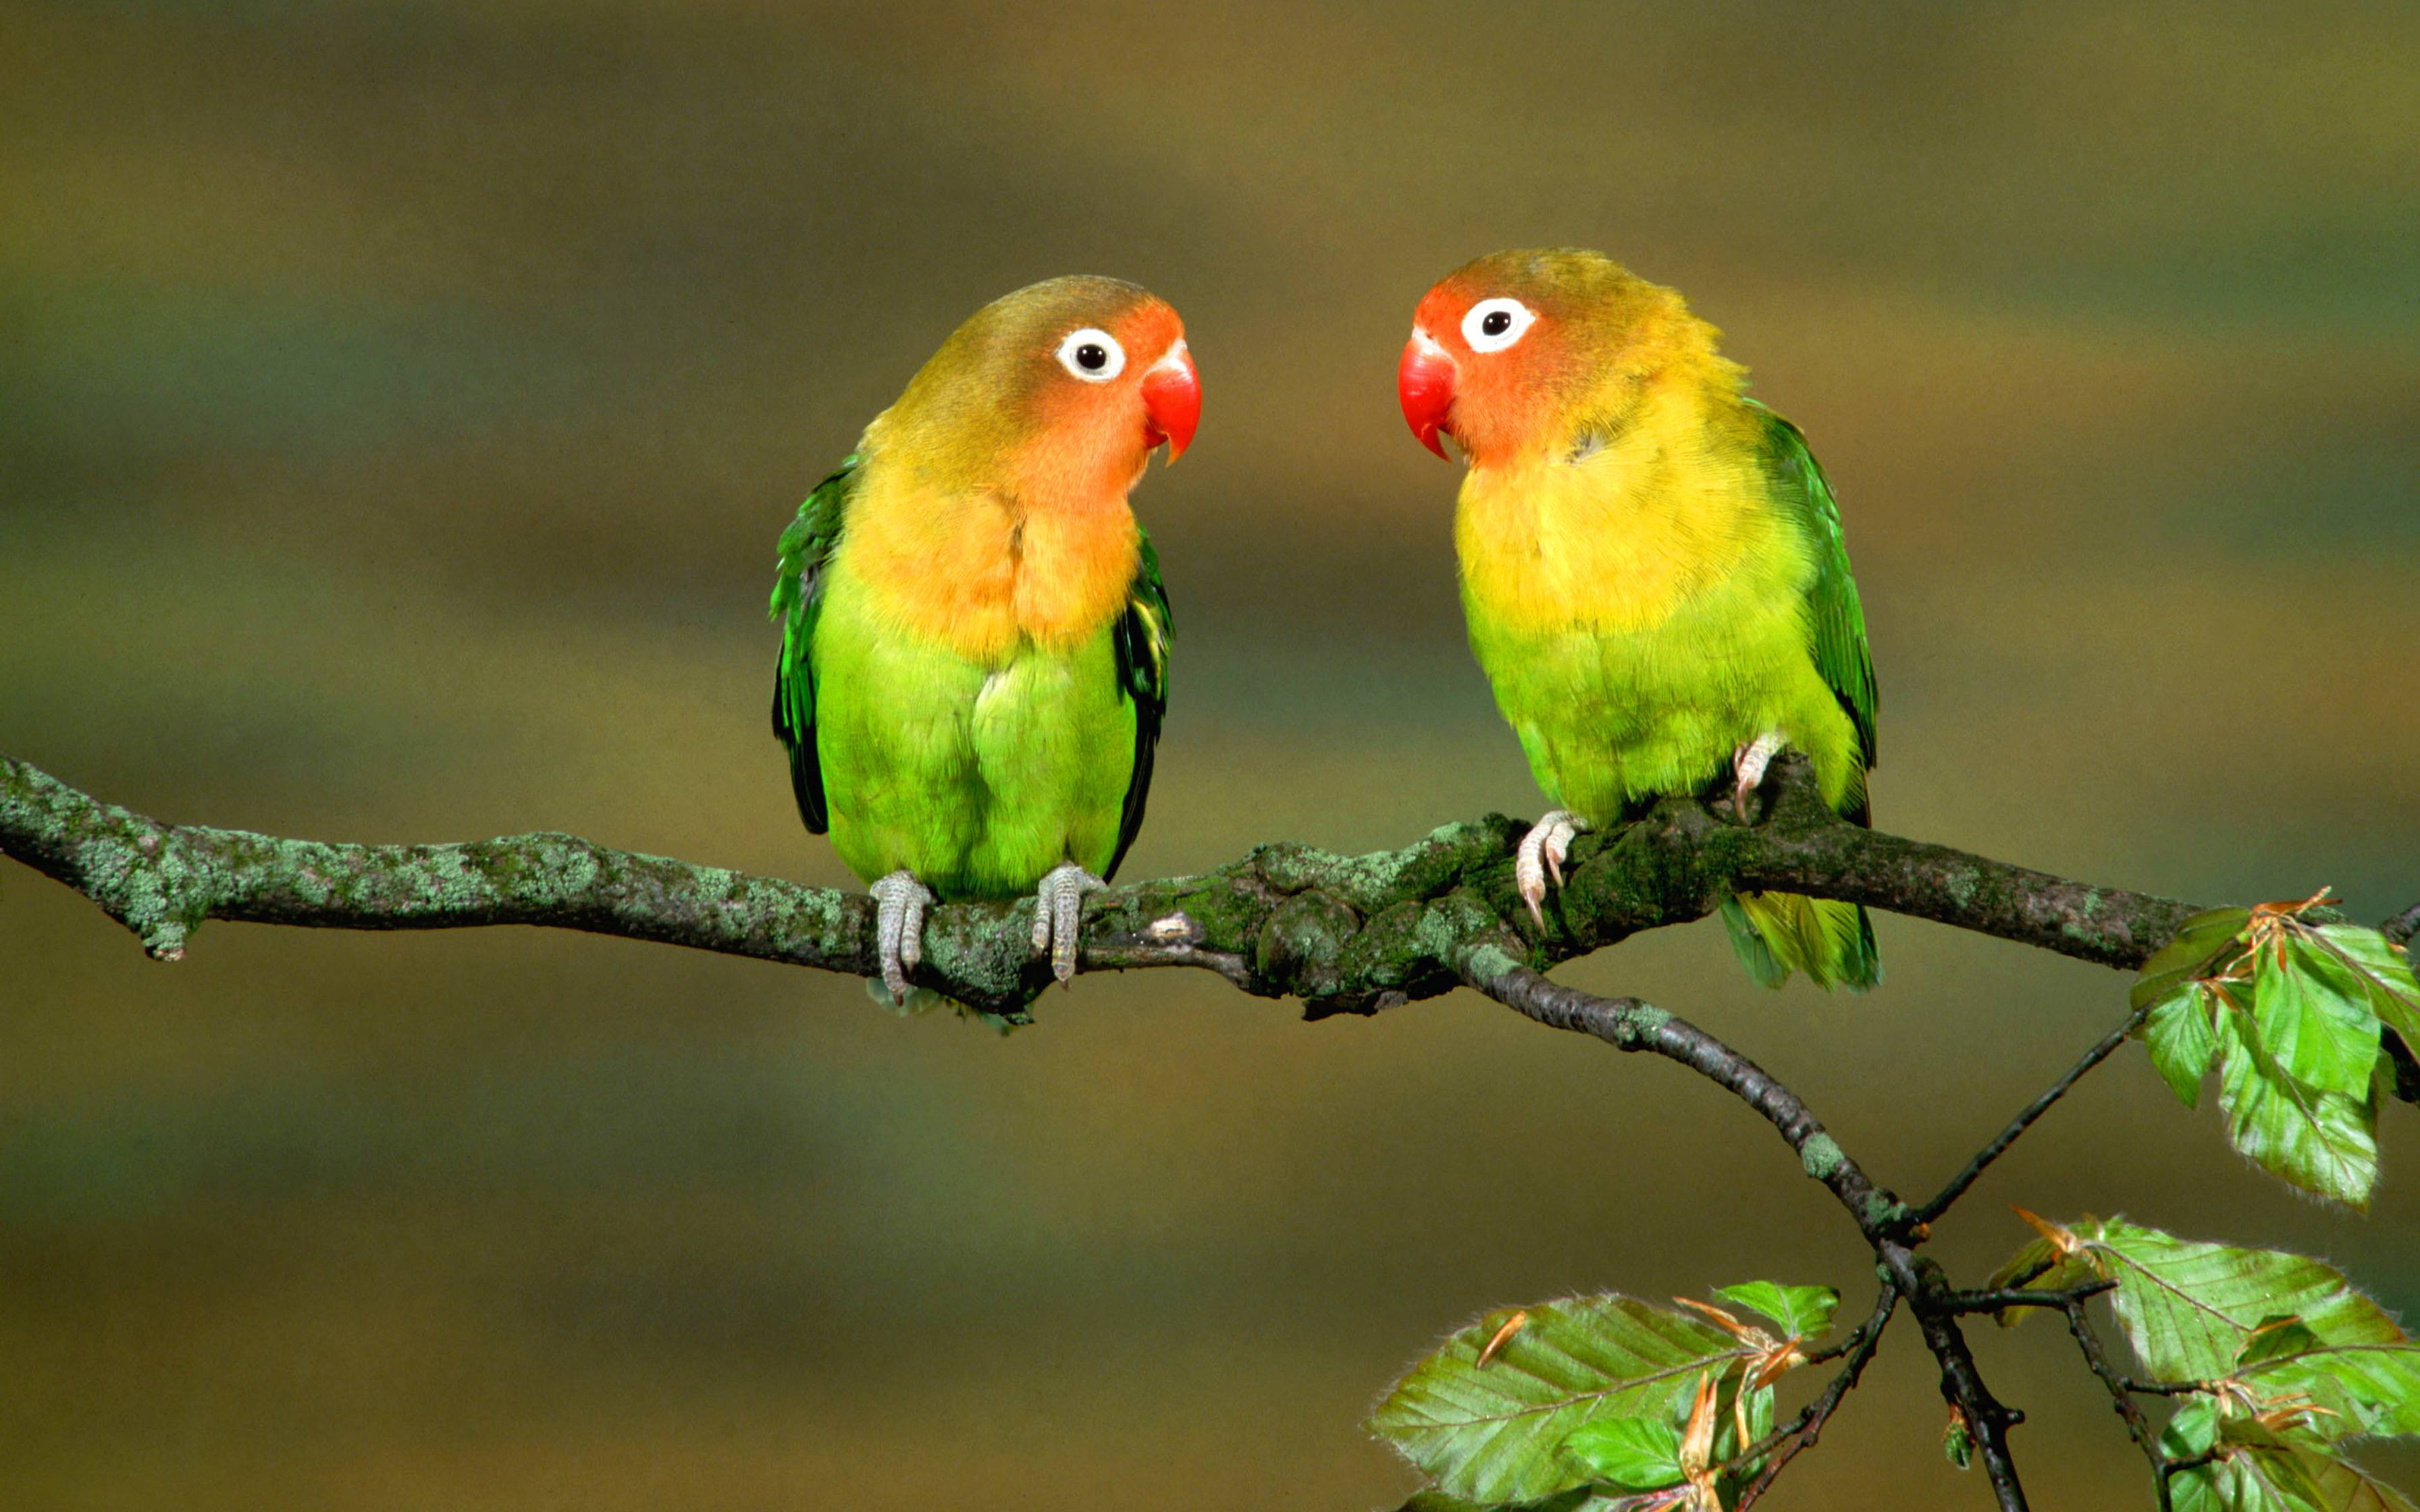 Love Birds couple Wallpaper : Parrot Wallpapers - Wallpaper cave